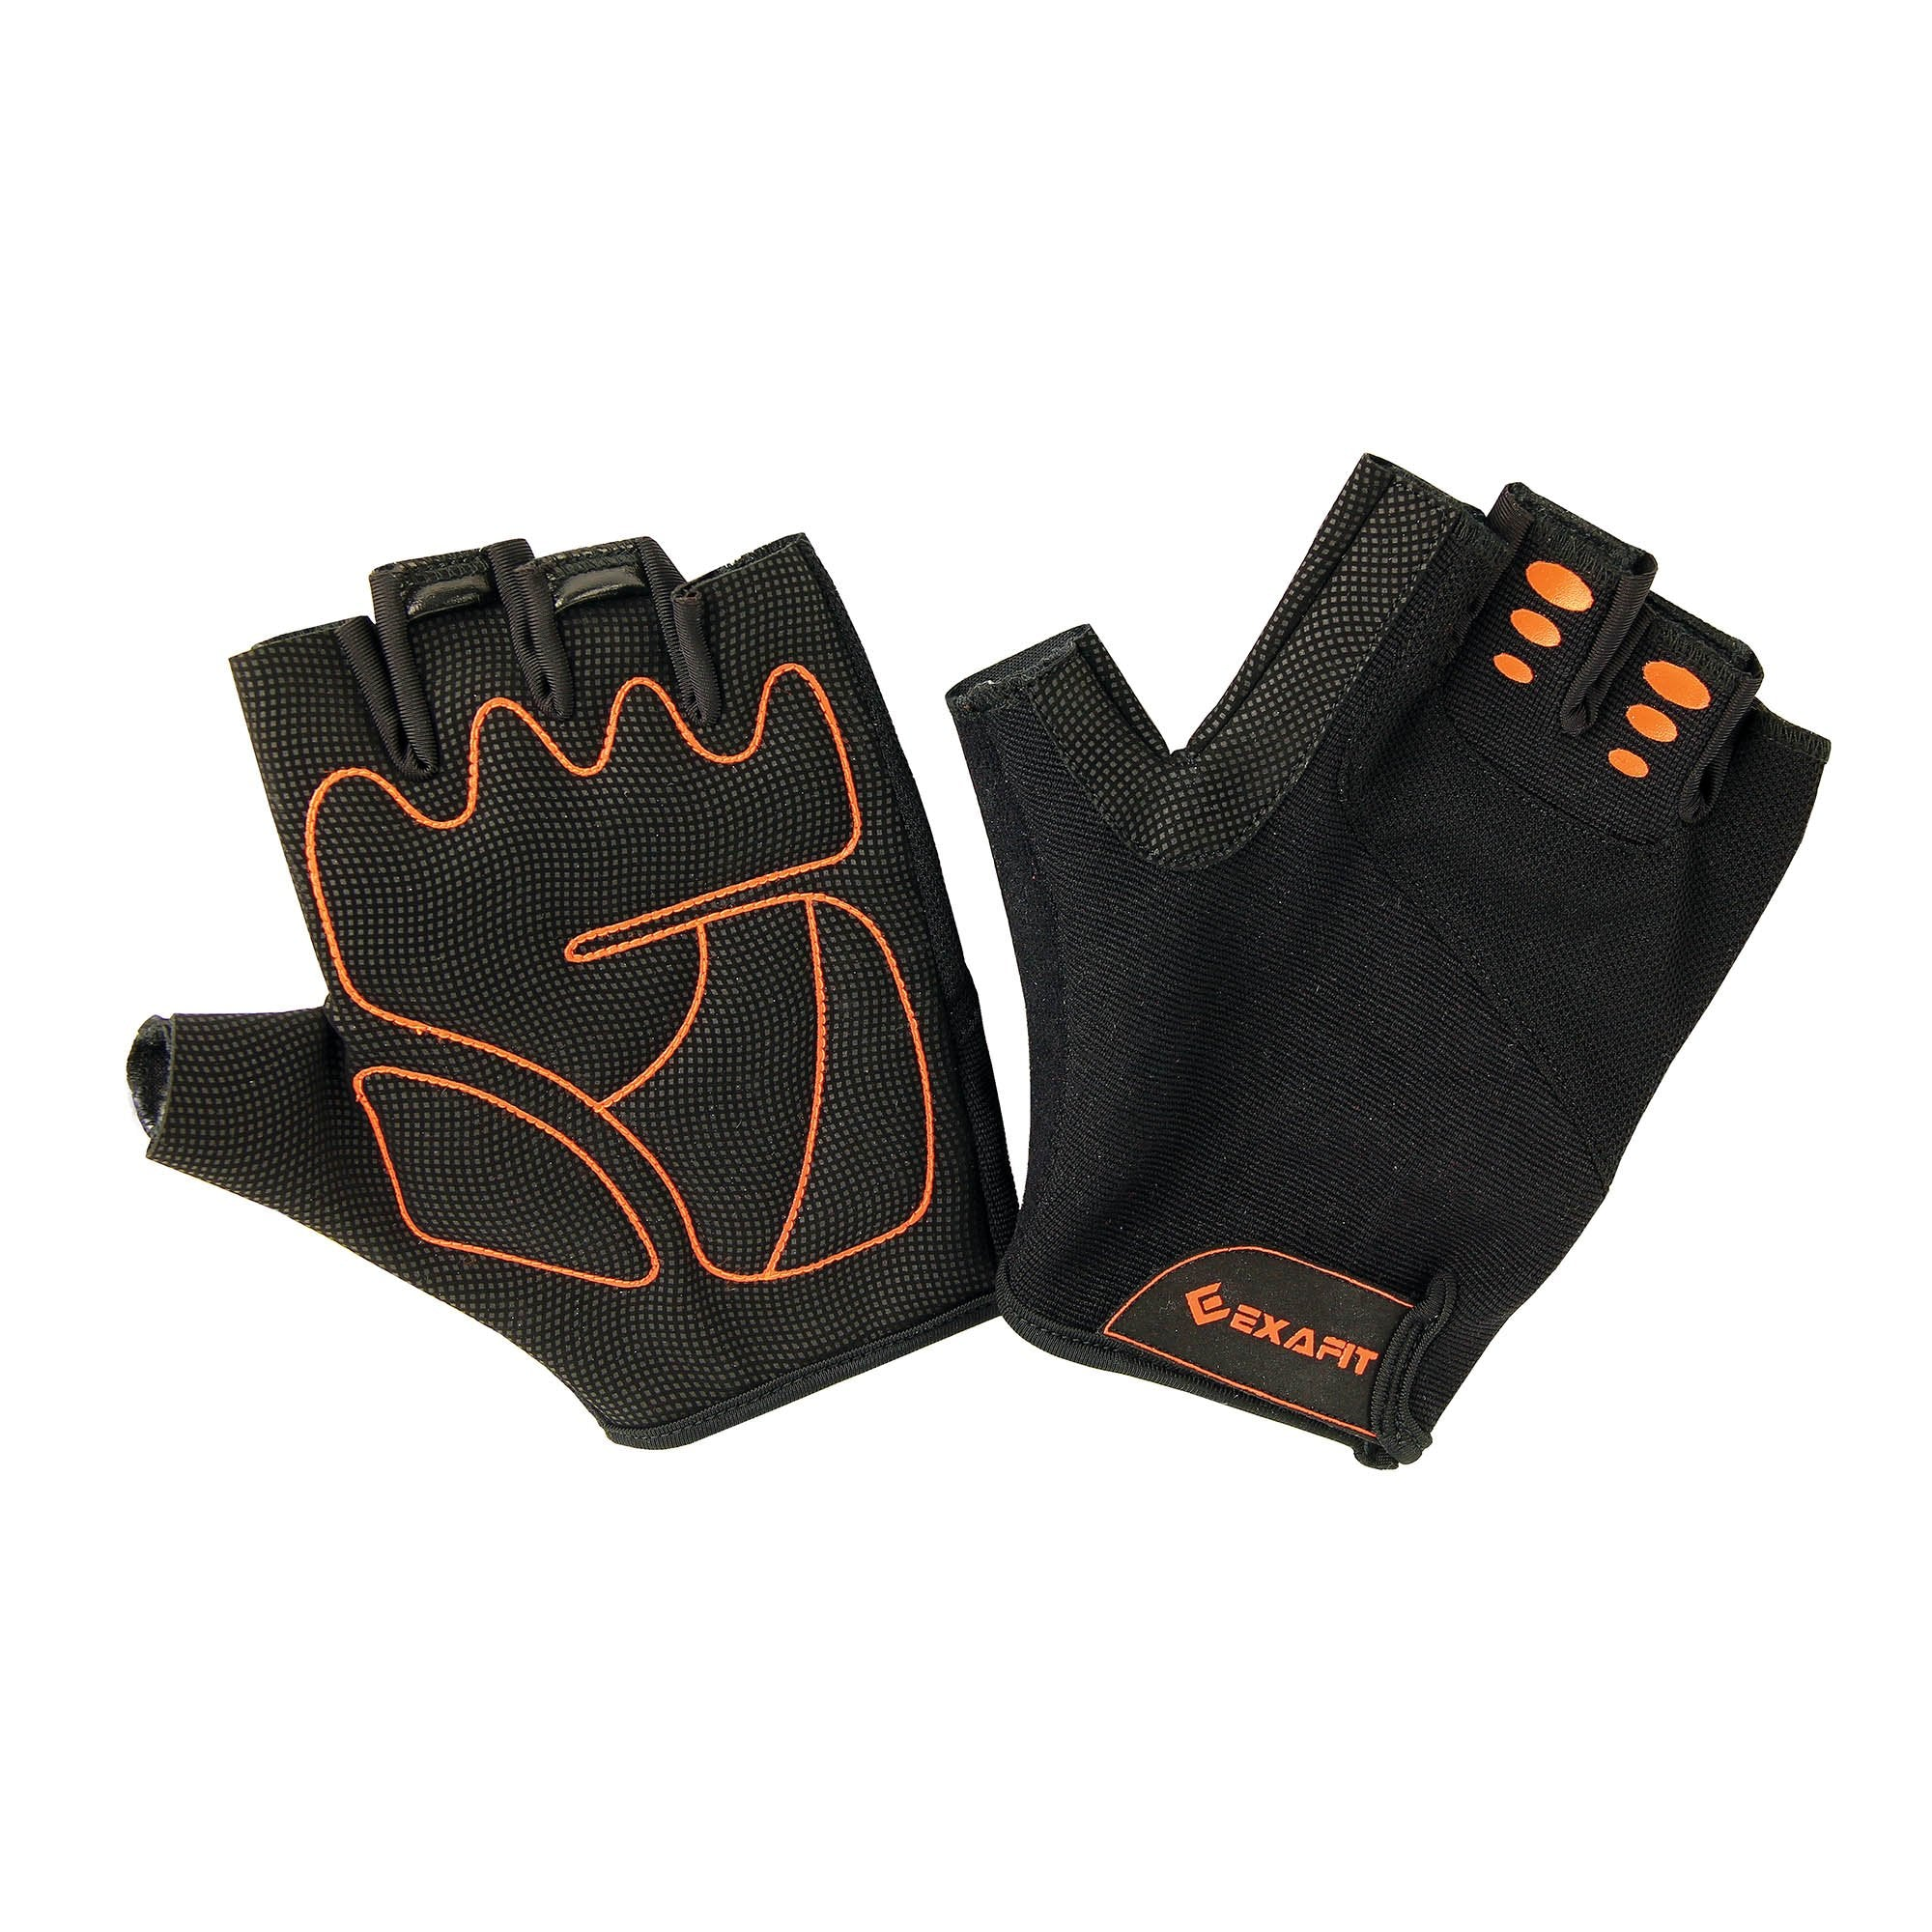 Image of ExaFit Mens Exercise Gloves